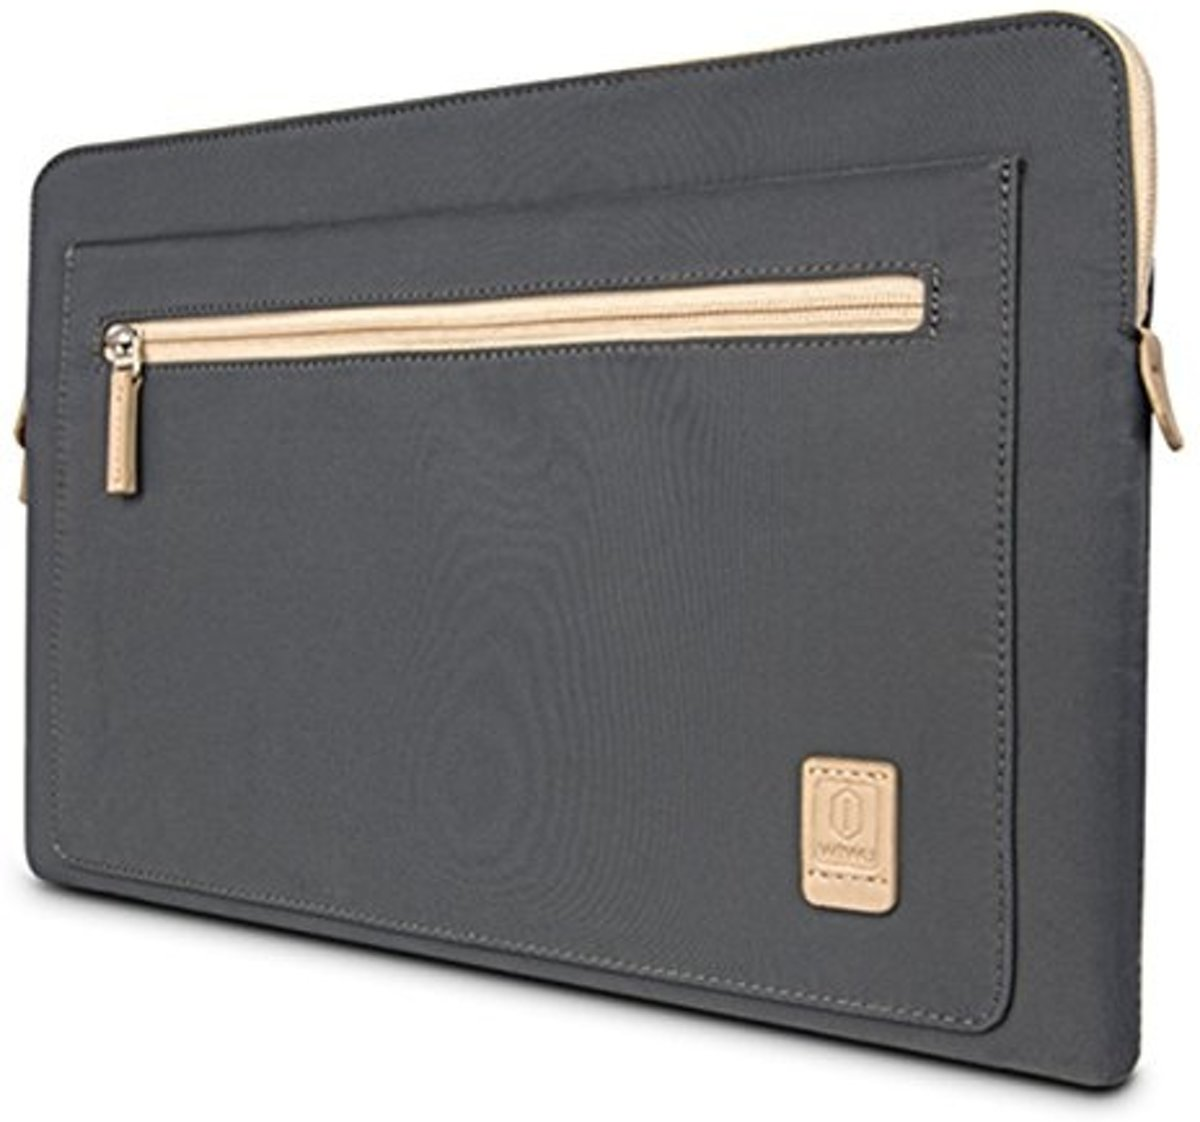 WIWU - 15,4 inch Athena Laptop & Macbook Sleeve - Grijs